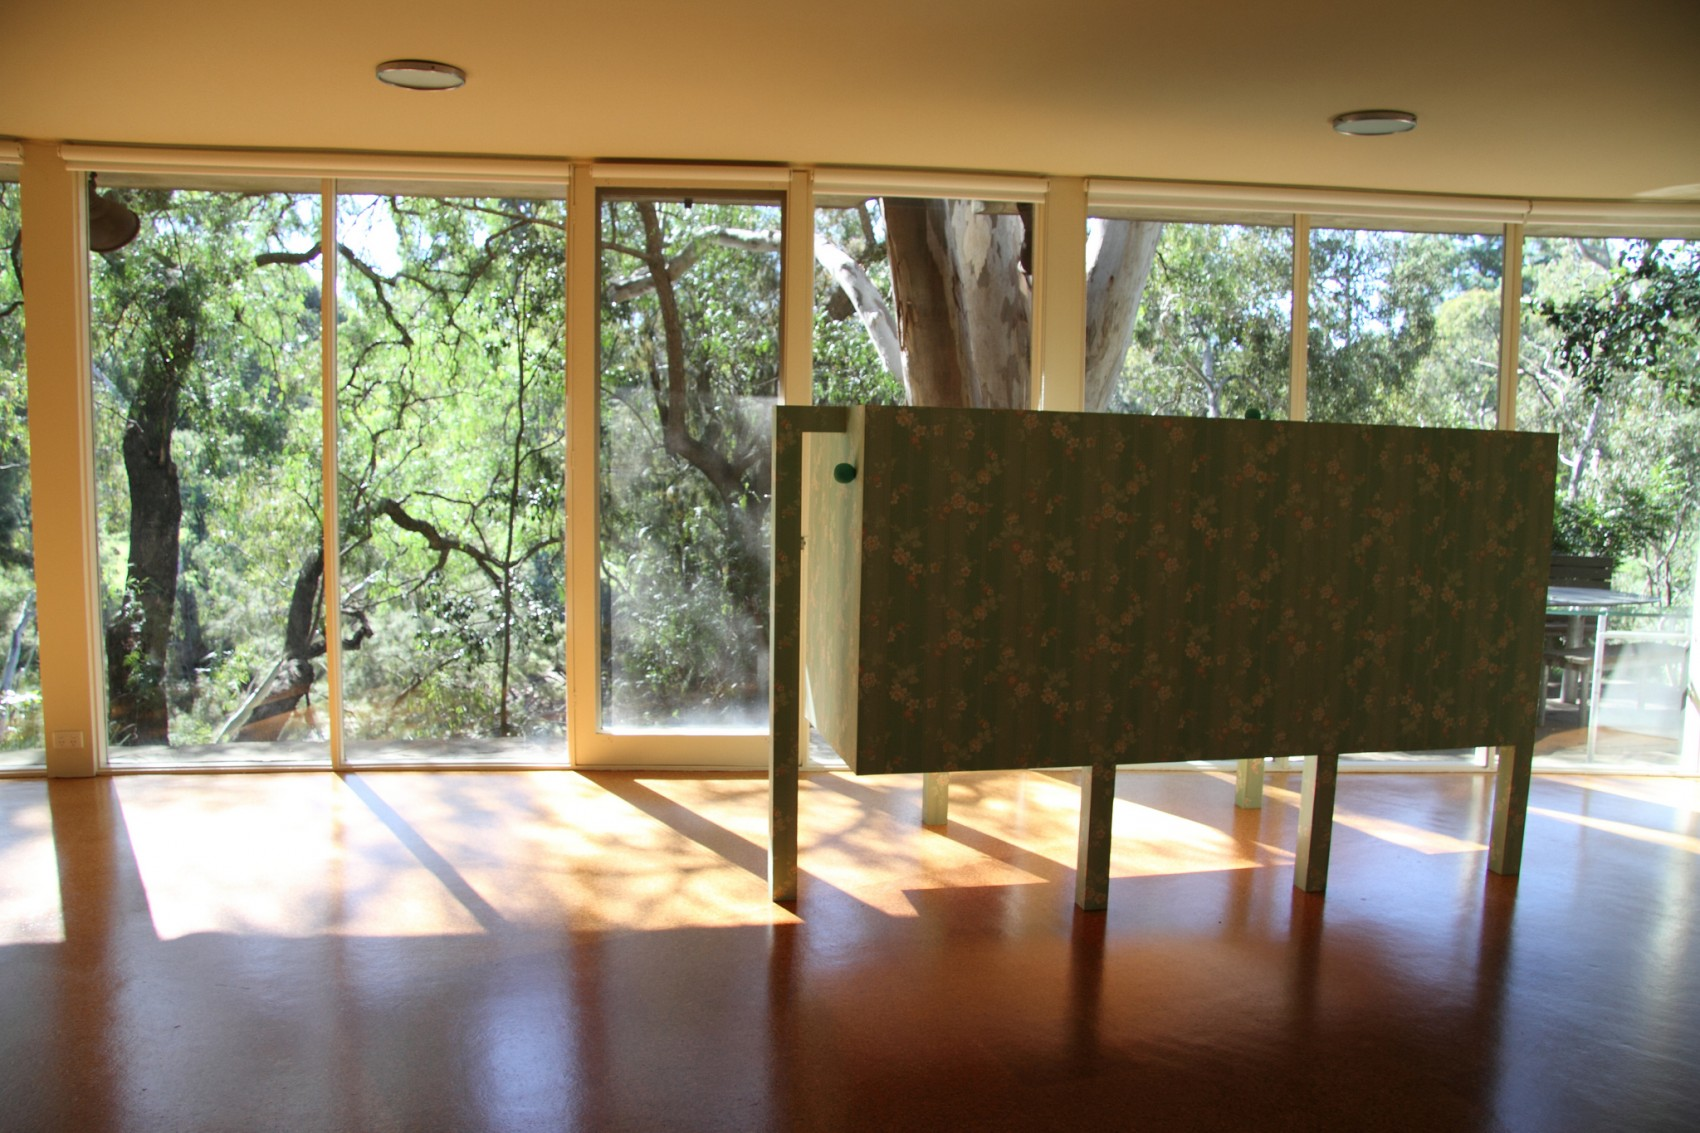 Pale green floral patterned box in a large sunny room with tree foliage visible through window